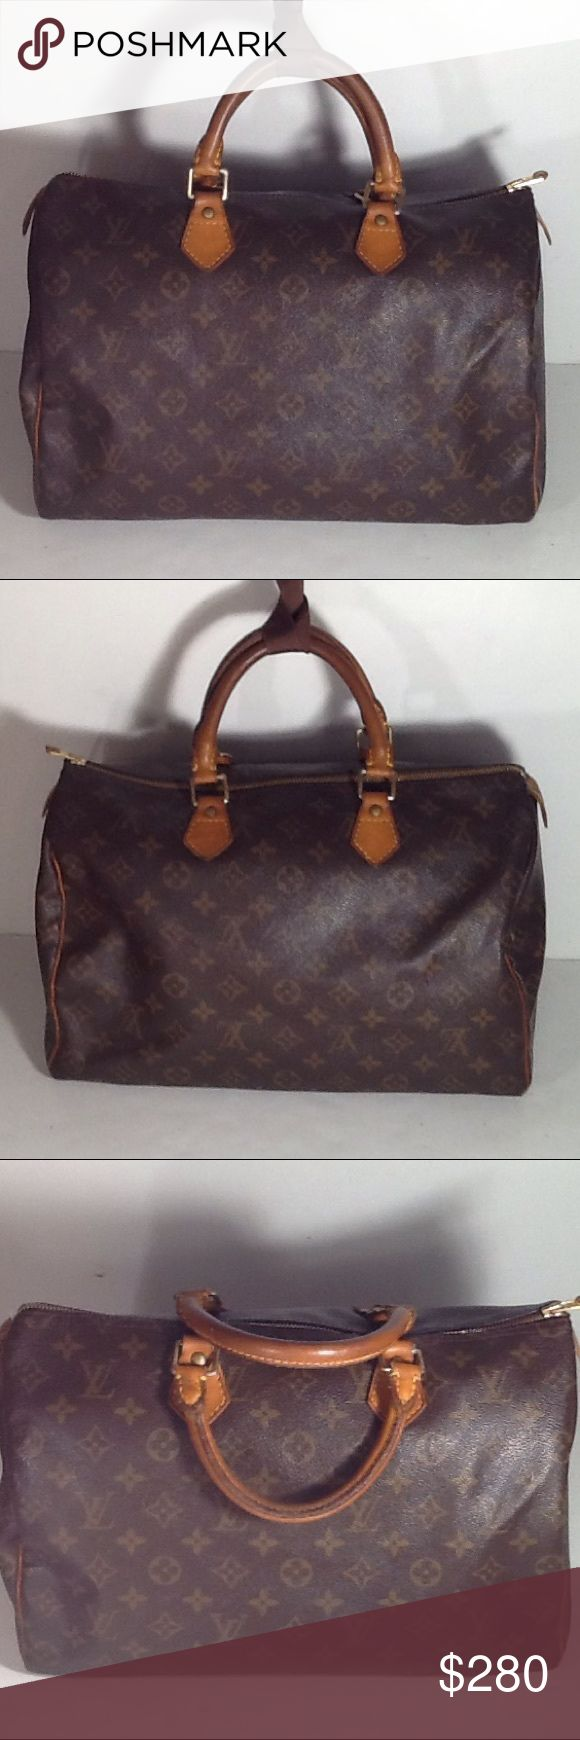 Authentic Louis Vuitton Speedy 35 Monogram Satchel Handles and leather showed wearing. Handle had sone light scratches. Canvas showed wearing on the  bottom corners. The inside linen are good. The bag was made in France with a date code MB 0012. The one leather piece to hold lock and key was replaced. Louis Vuitton Bags Satchels